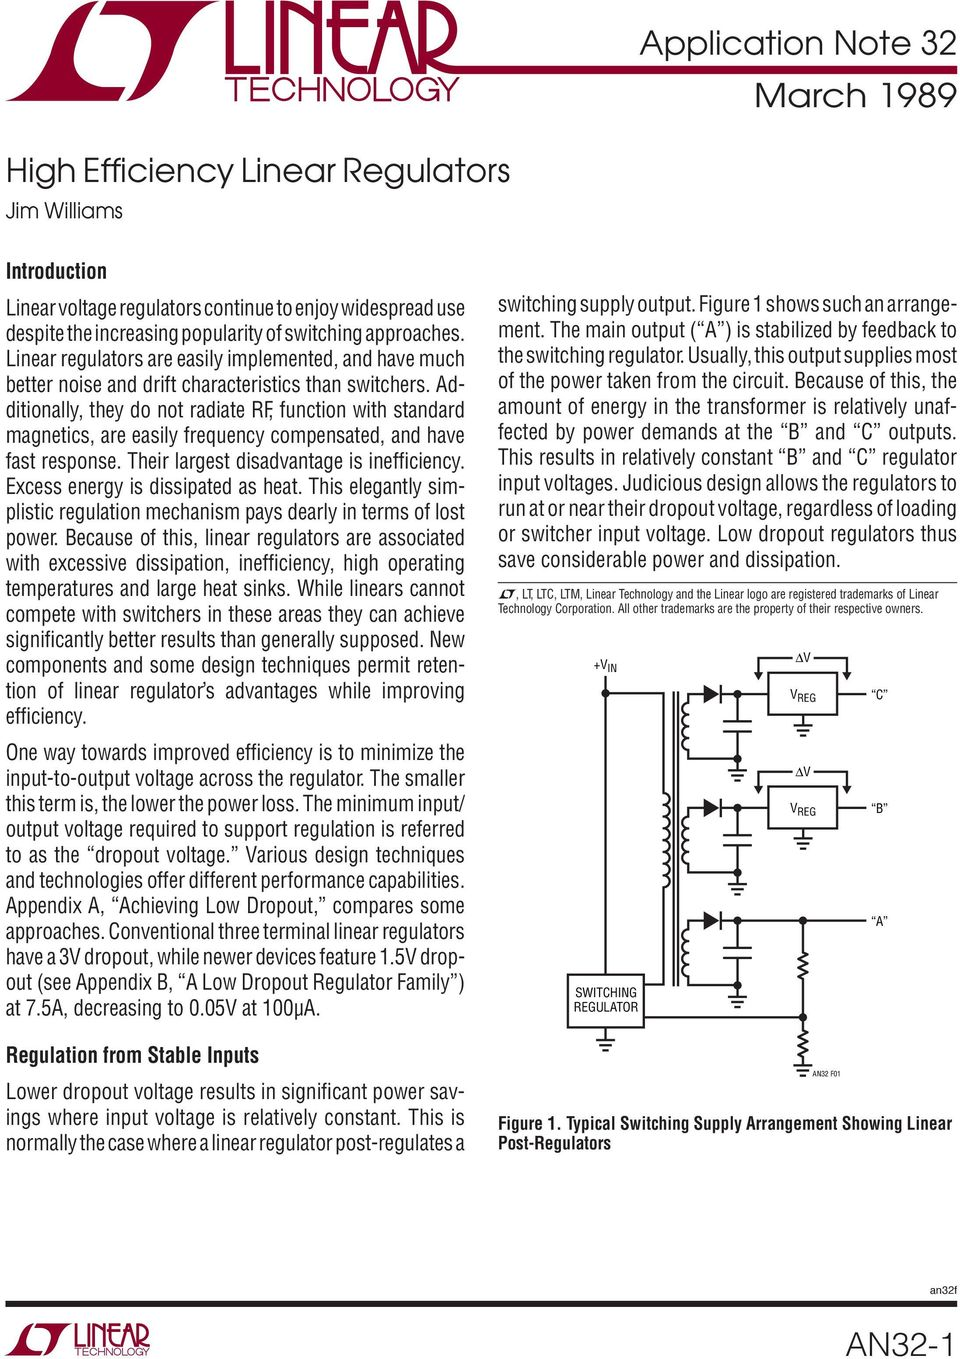 Application Note 32 March High Effi Ciency Linear Regulators An32 1 Power Loss Comparison With The Regulator Additionally They Do Not Radiate Rf Function Standard Magnetics Are Easily Frequency